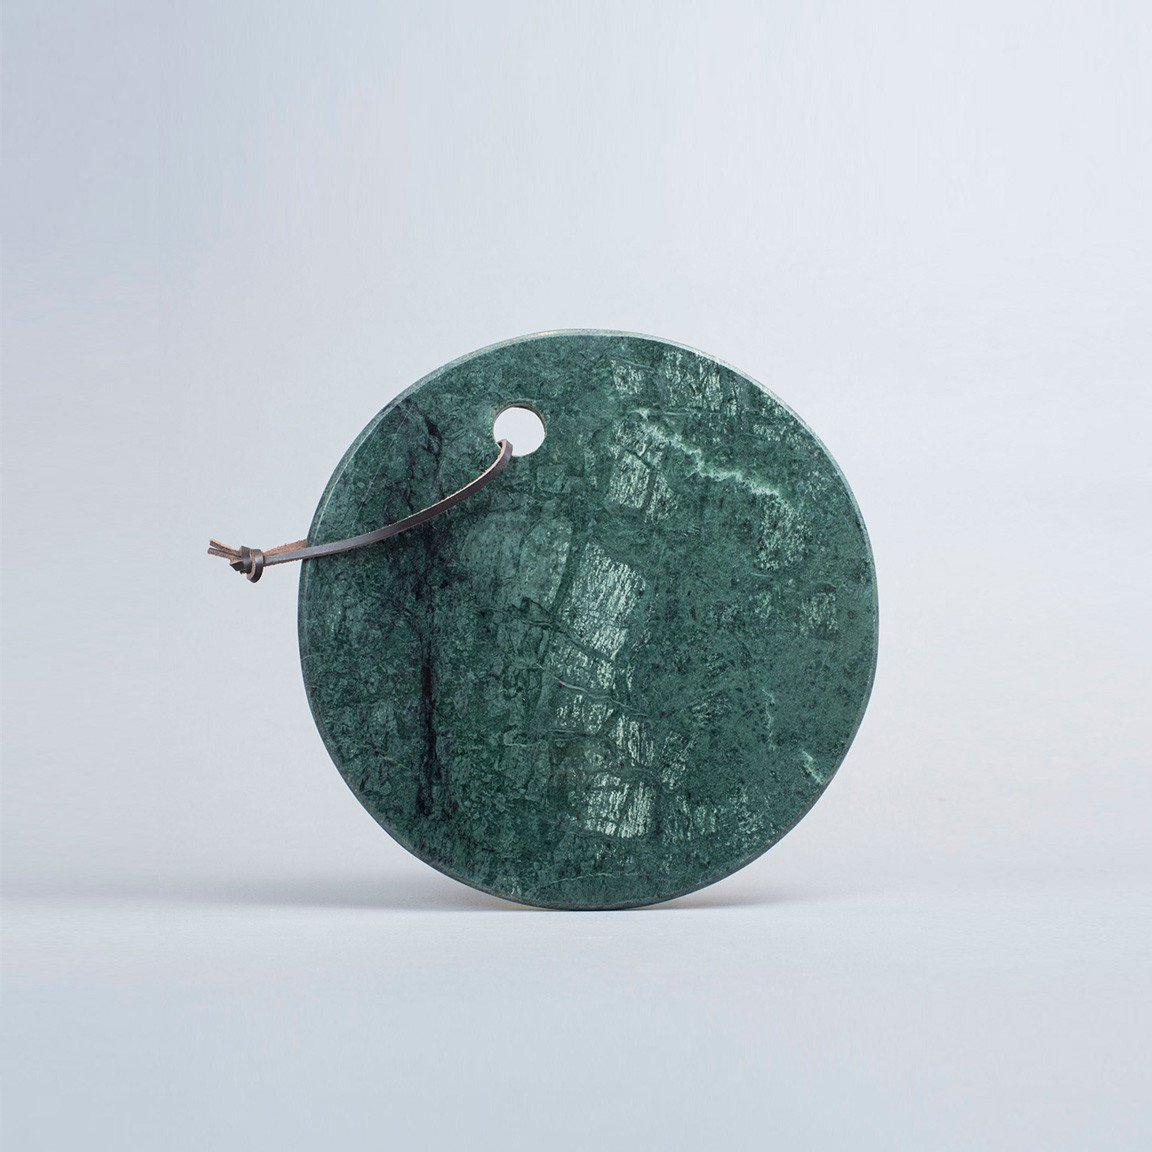 handmade decor items cutting board green marble by madam stolz